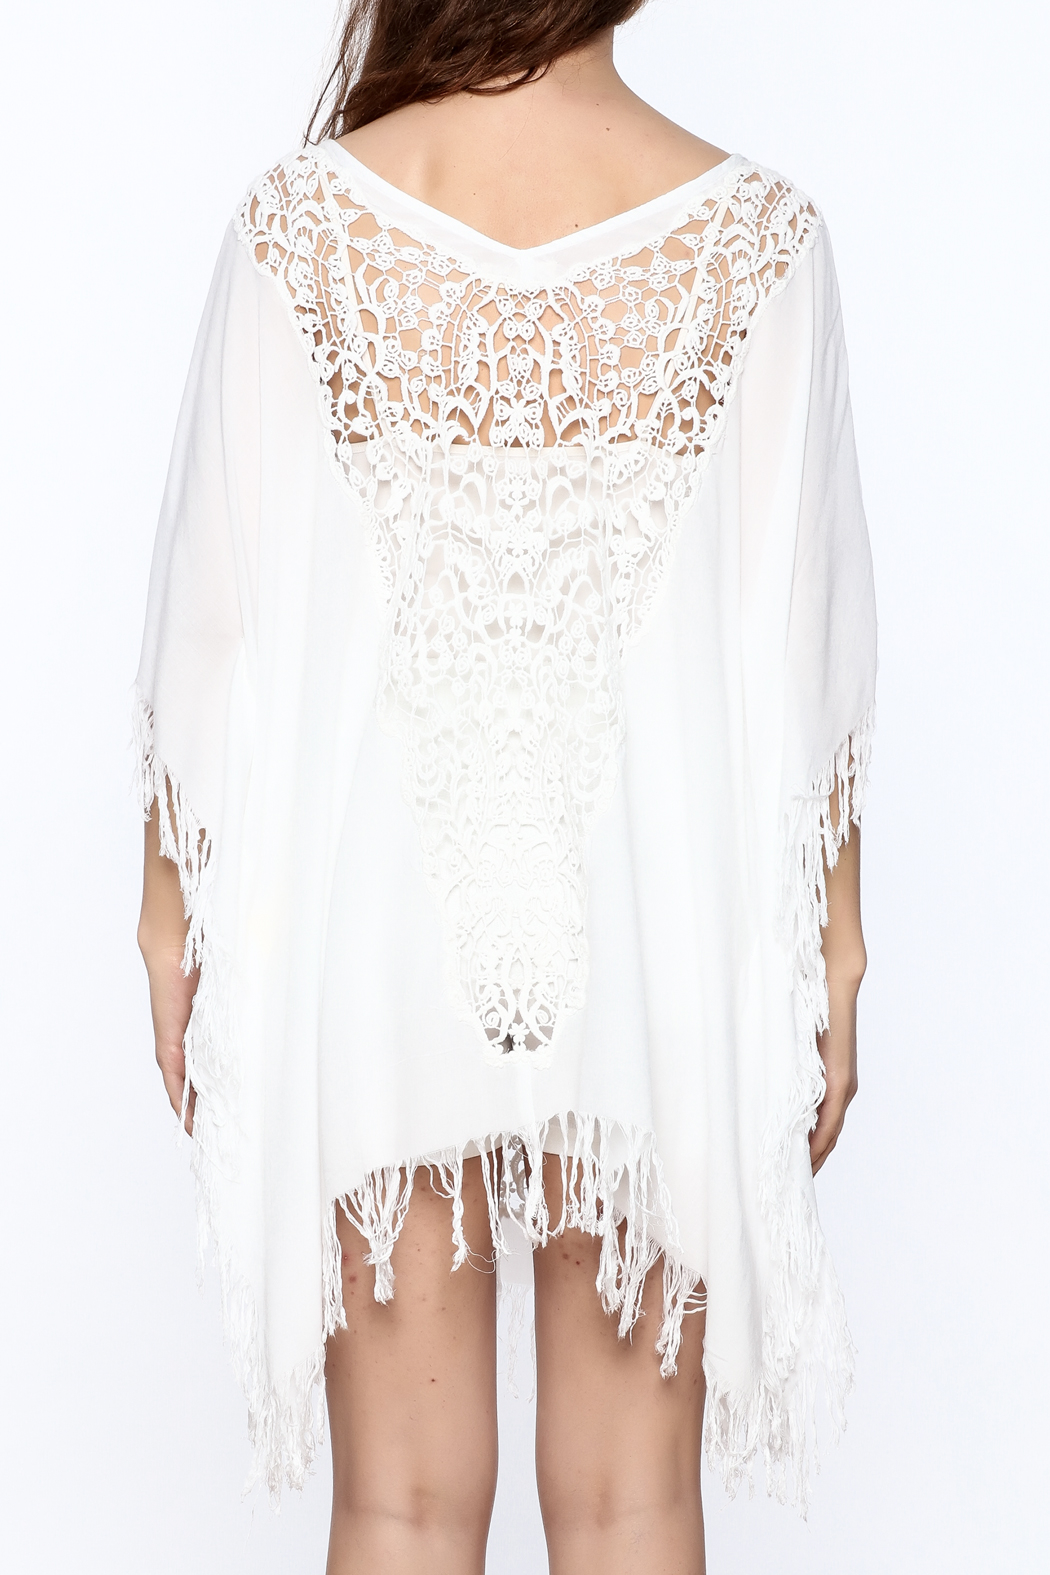 Elan White Crochet Cover Up - Back Cropped Image